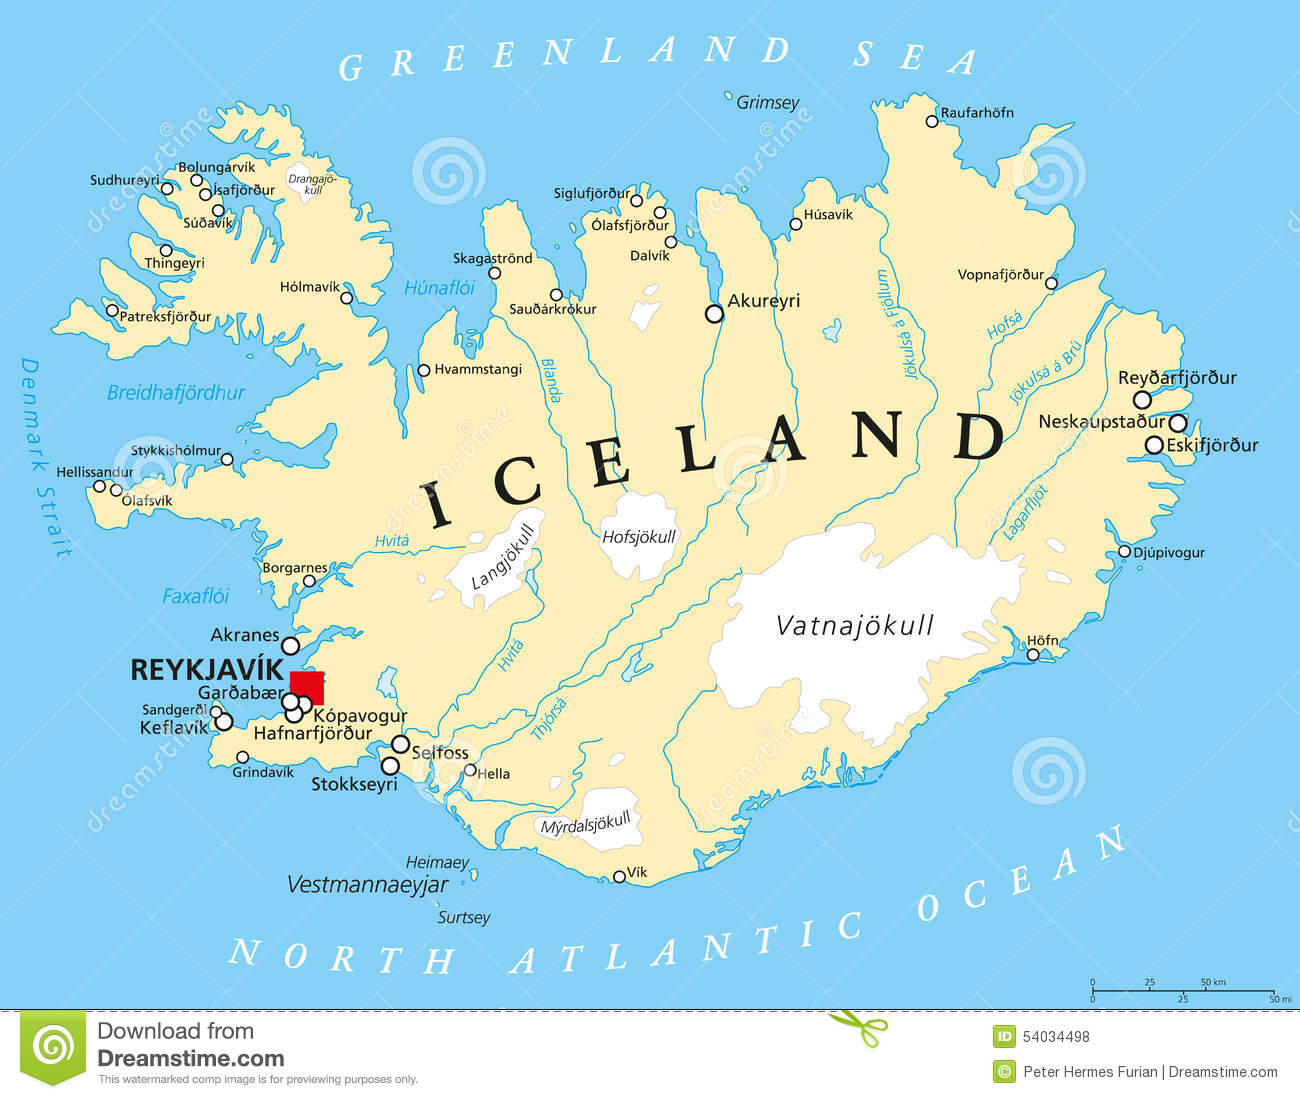 Reykjavik Iceland Map Iceland Political Map stock vector. Illustration of kopavogur